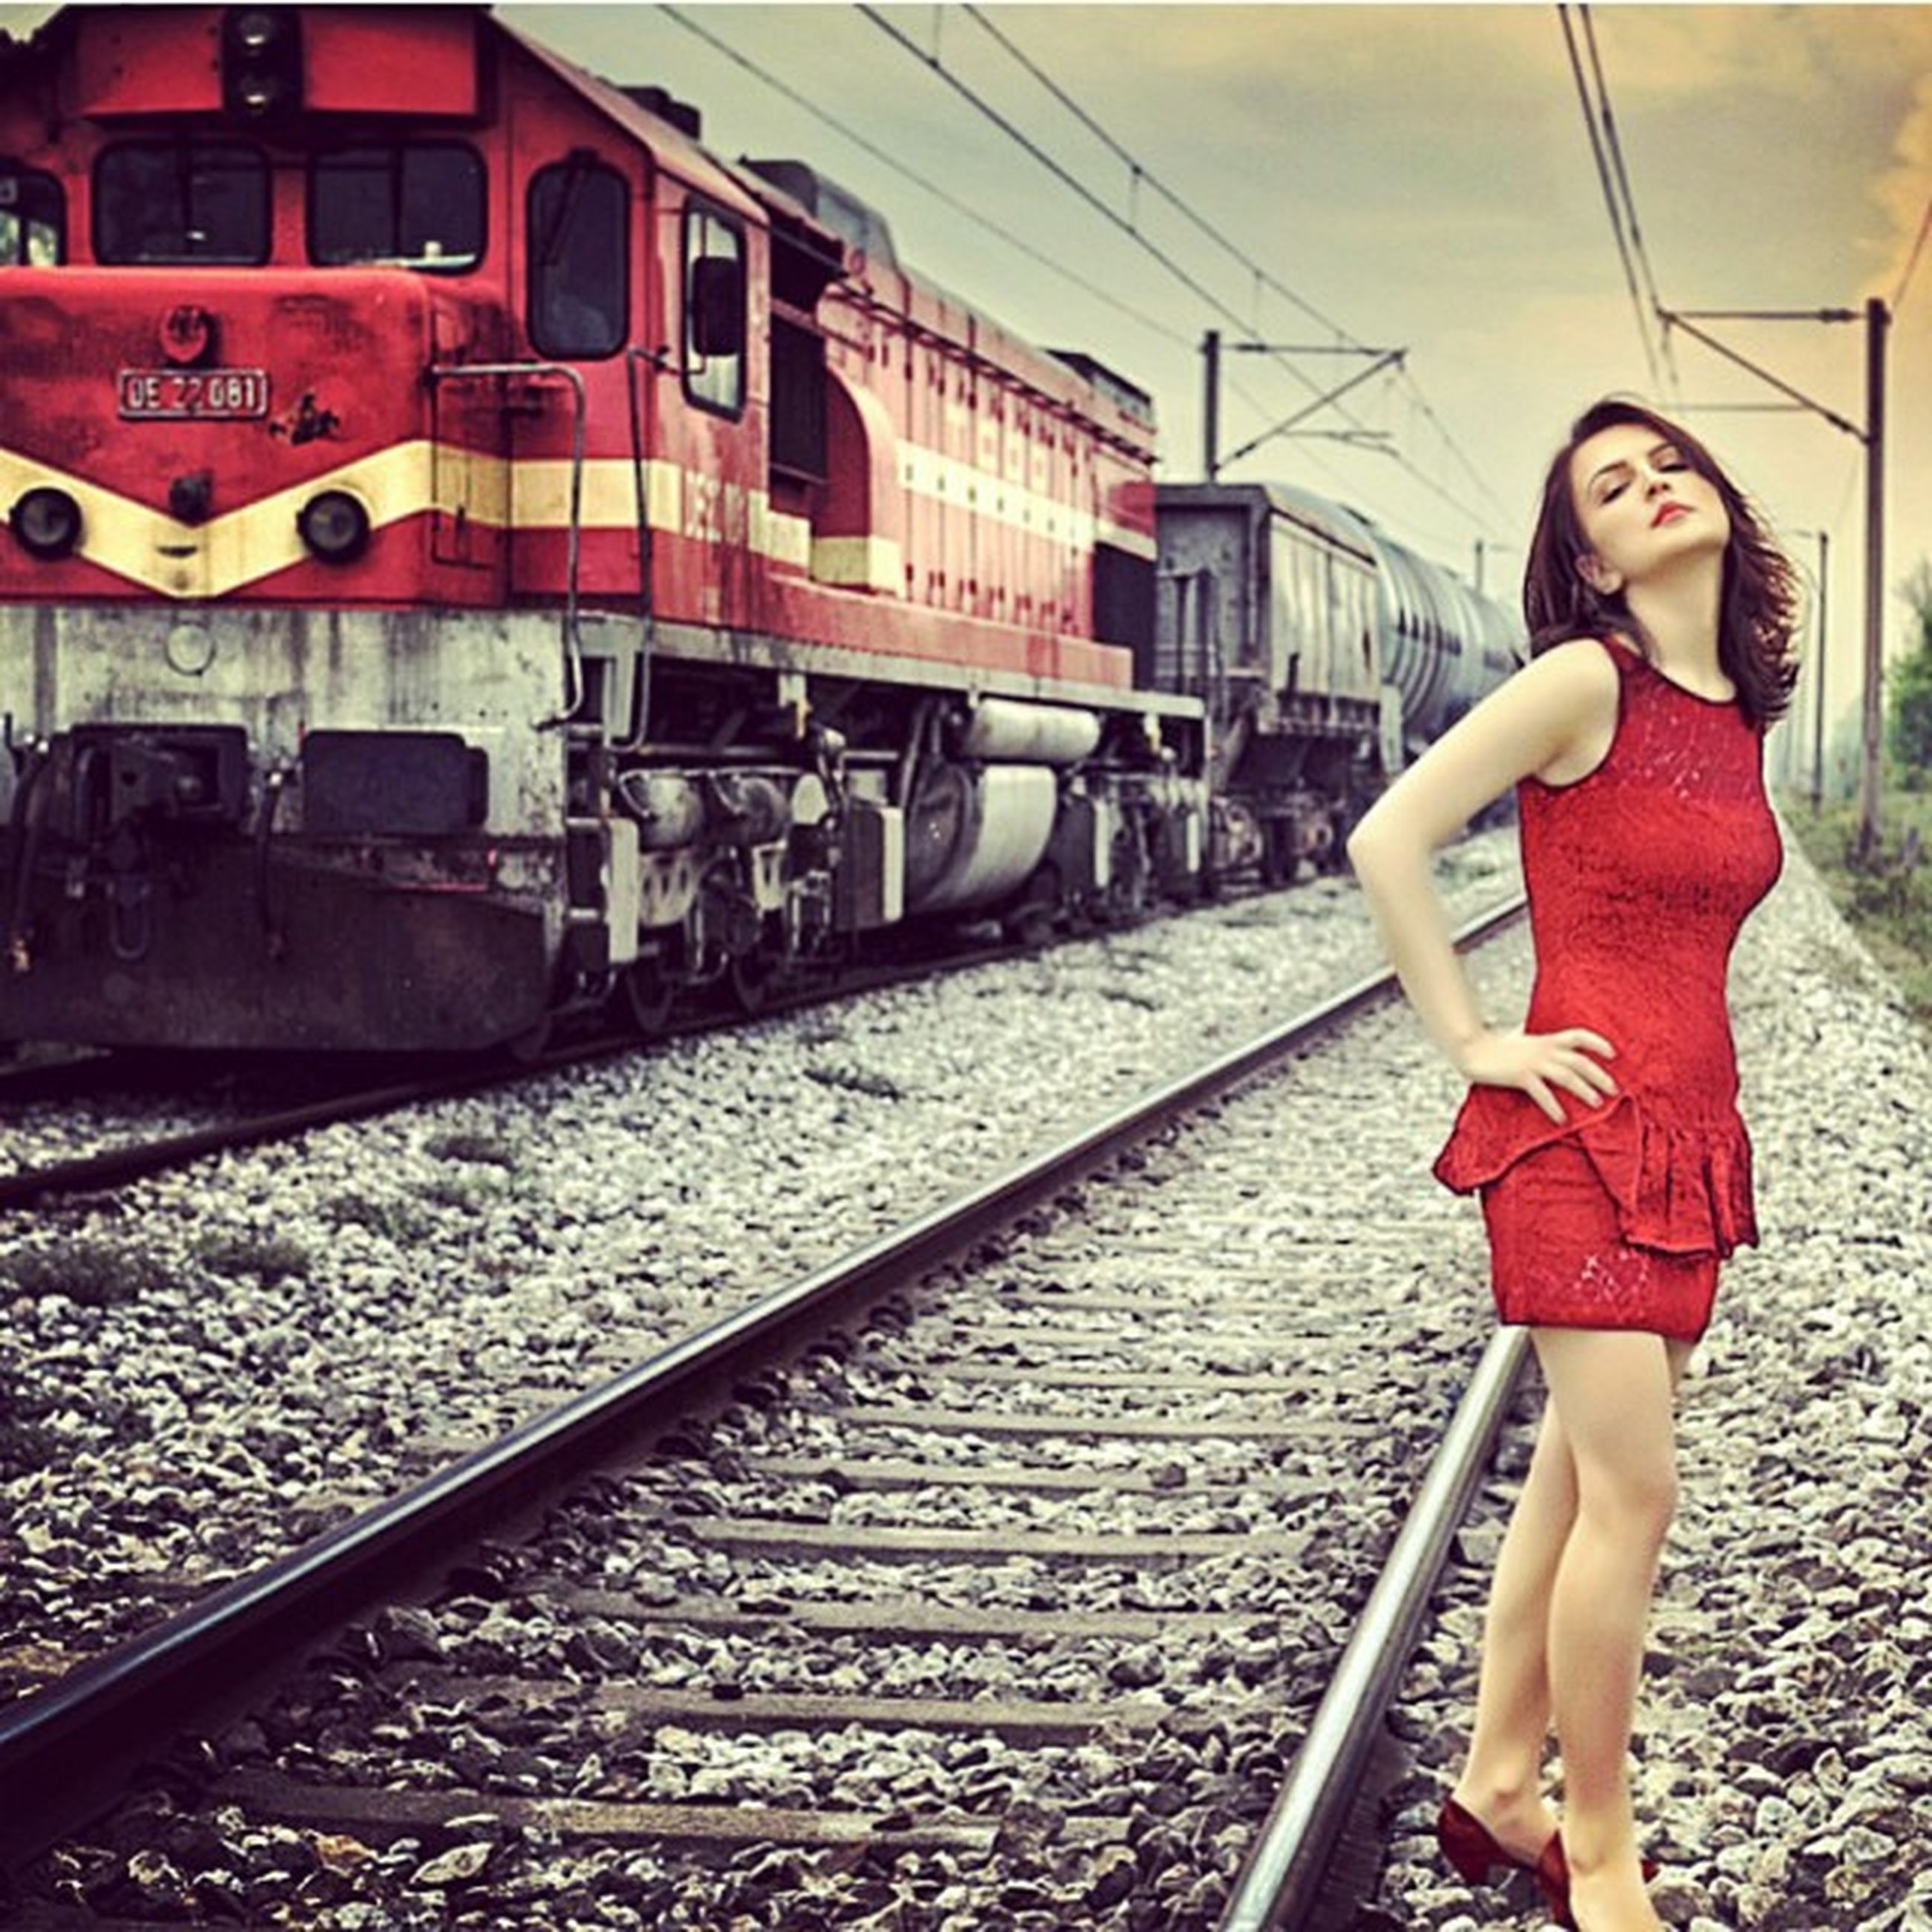 railroad track, rail transportation, transportation, public transportation, railroad station platform, travel, lifestyles, mode of transport, train - vehicle, railroad station, train, passenger train, casual clothing, standing, leisure activity, full length, built structure, red